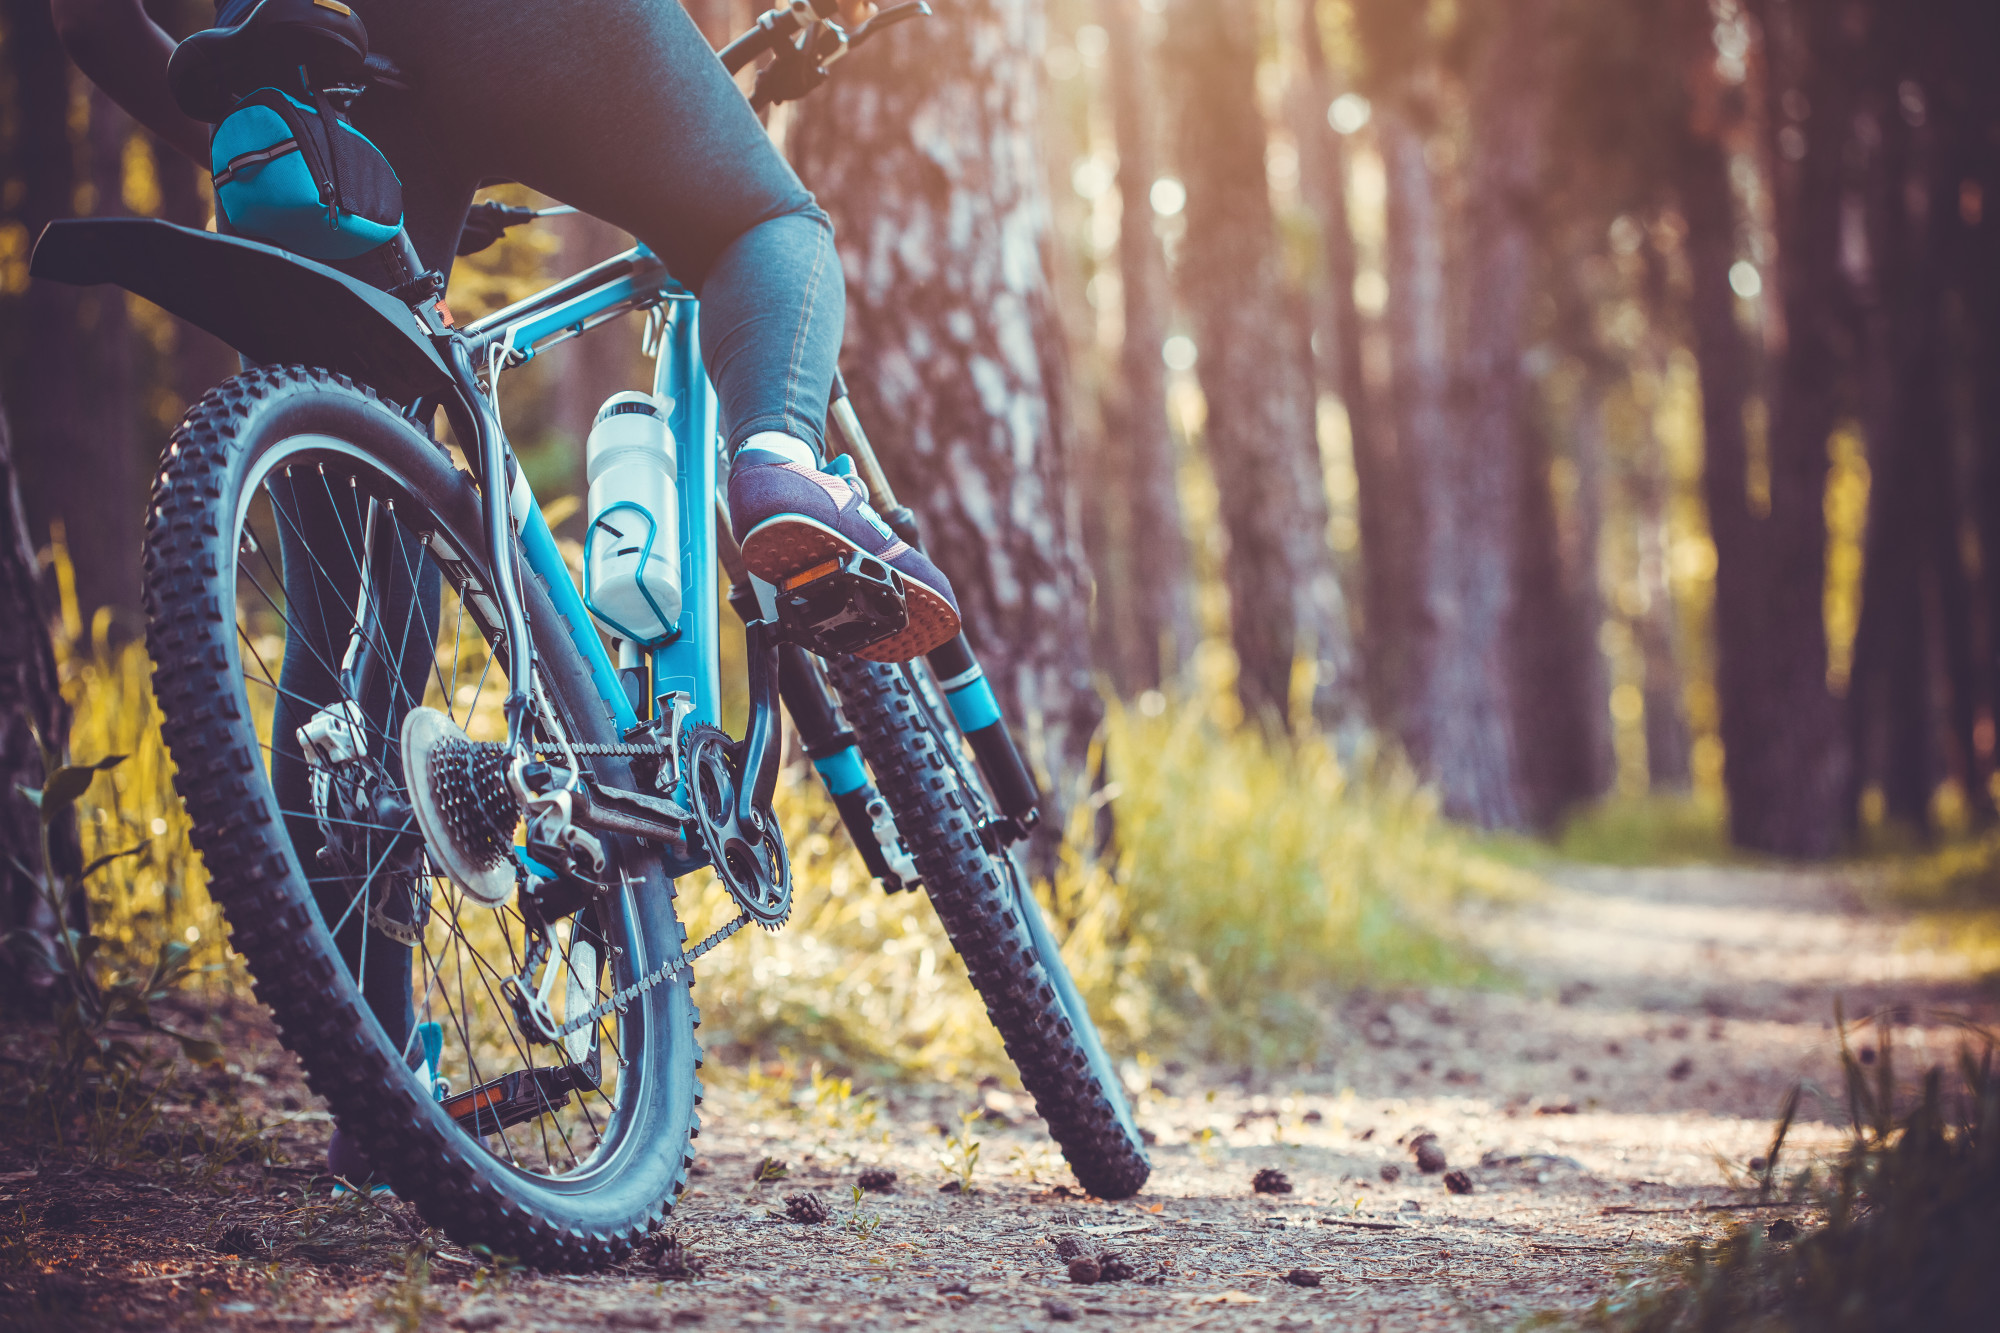 5 Reasons Why Garden City is Great for Bike Lovers